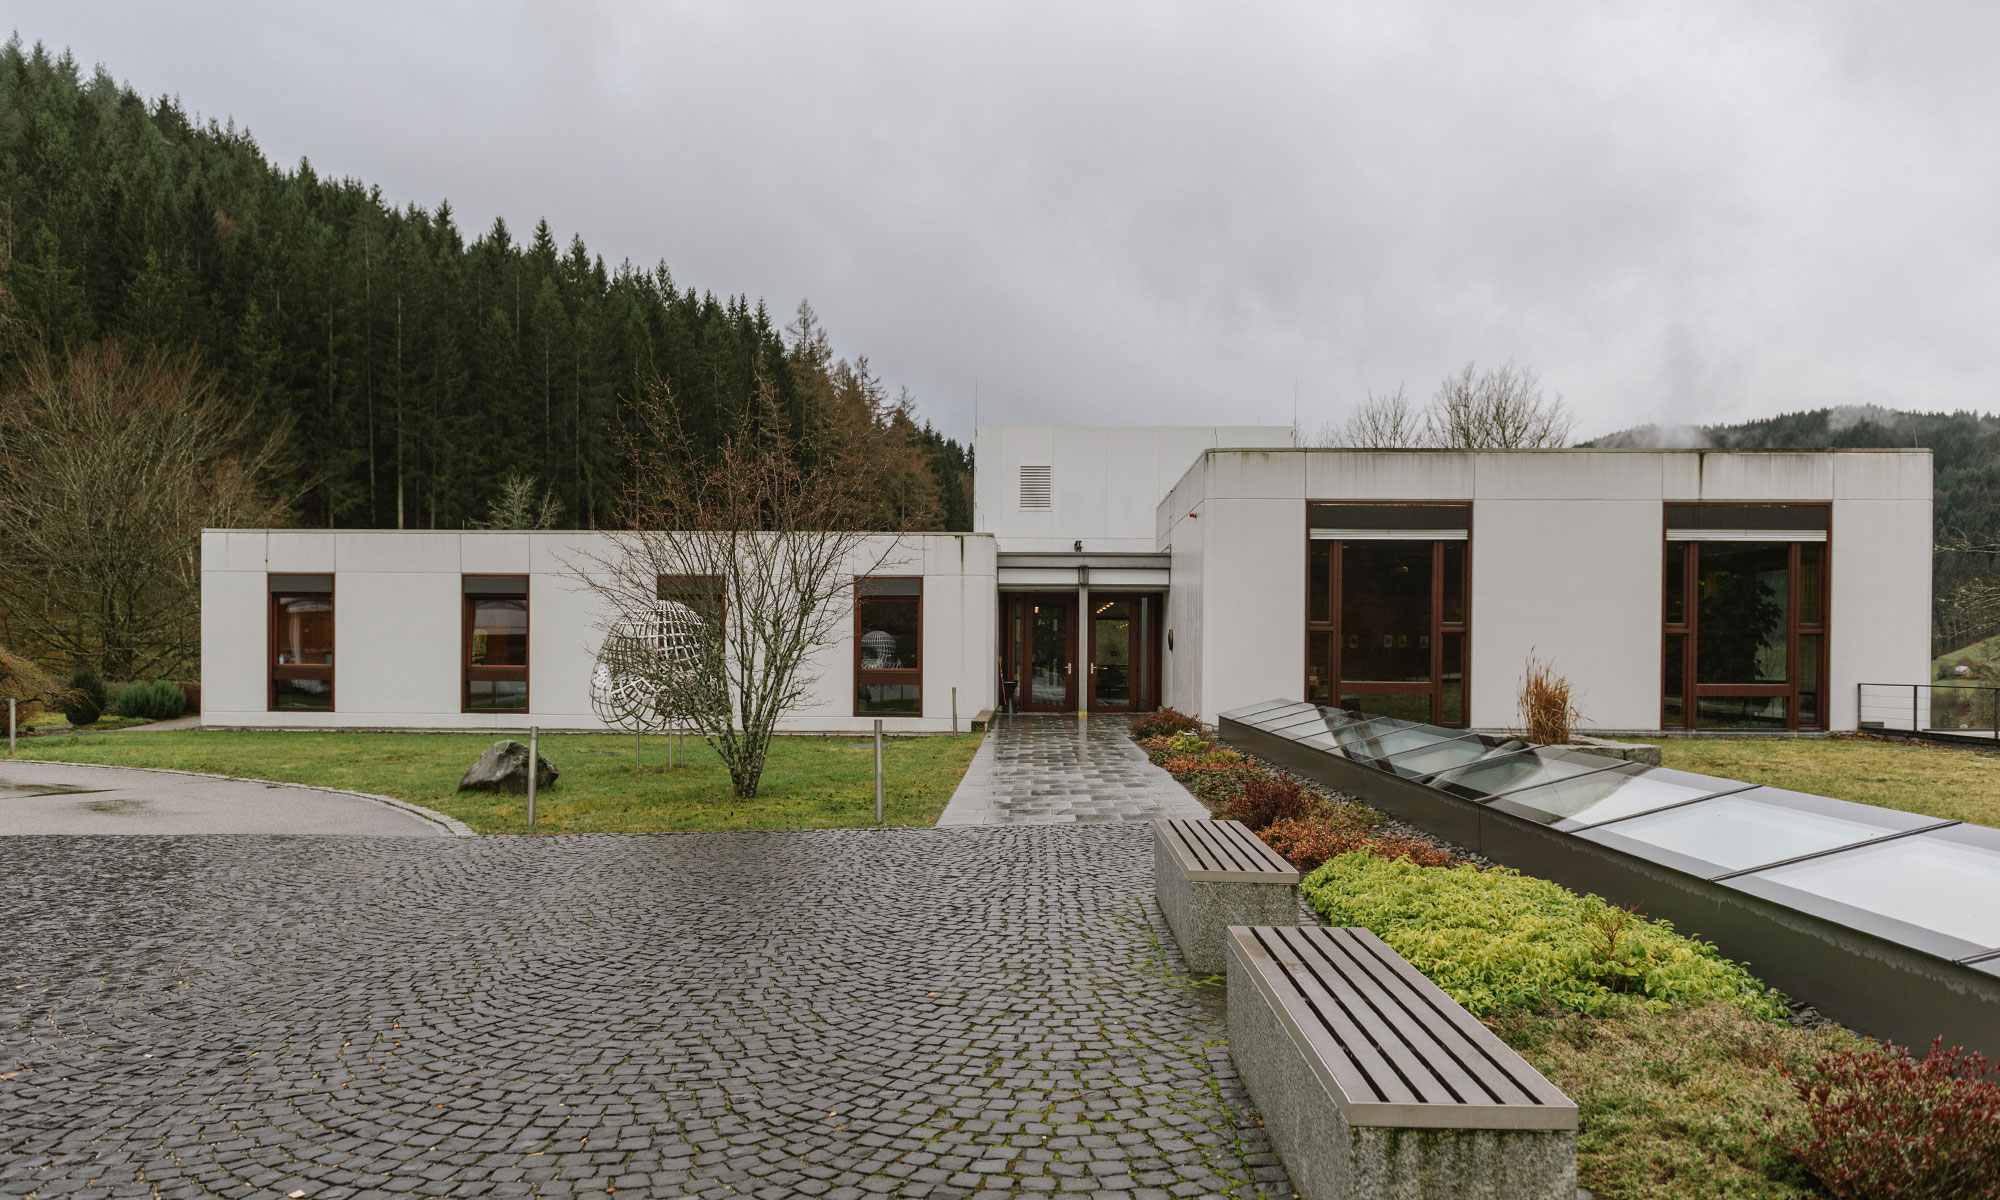 Exterior photo of the main building of the Oberwolfach Research Institute for Mathematics on a cloudy day